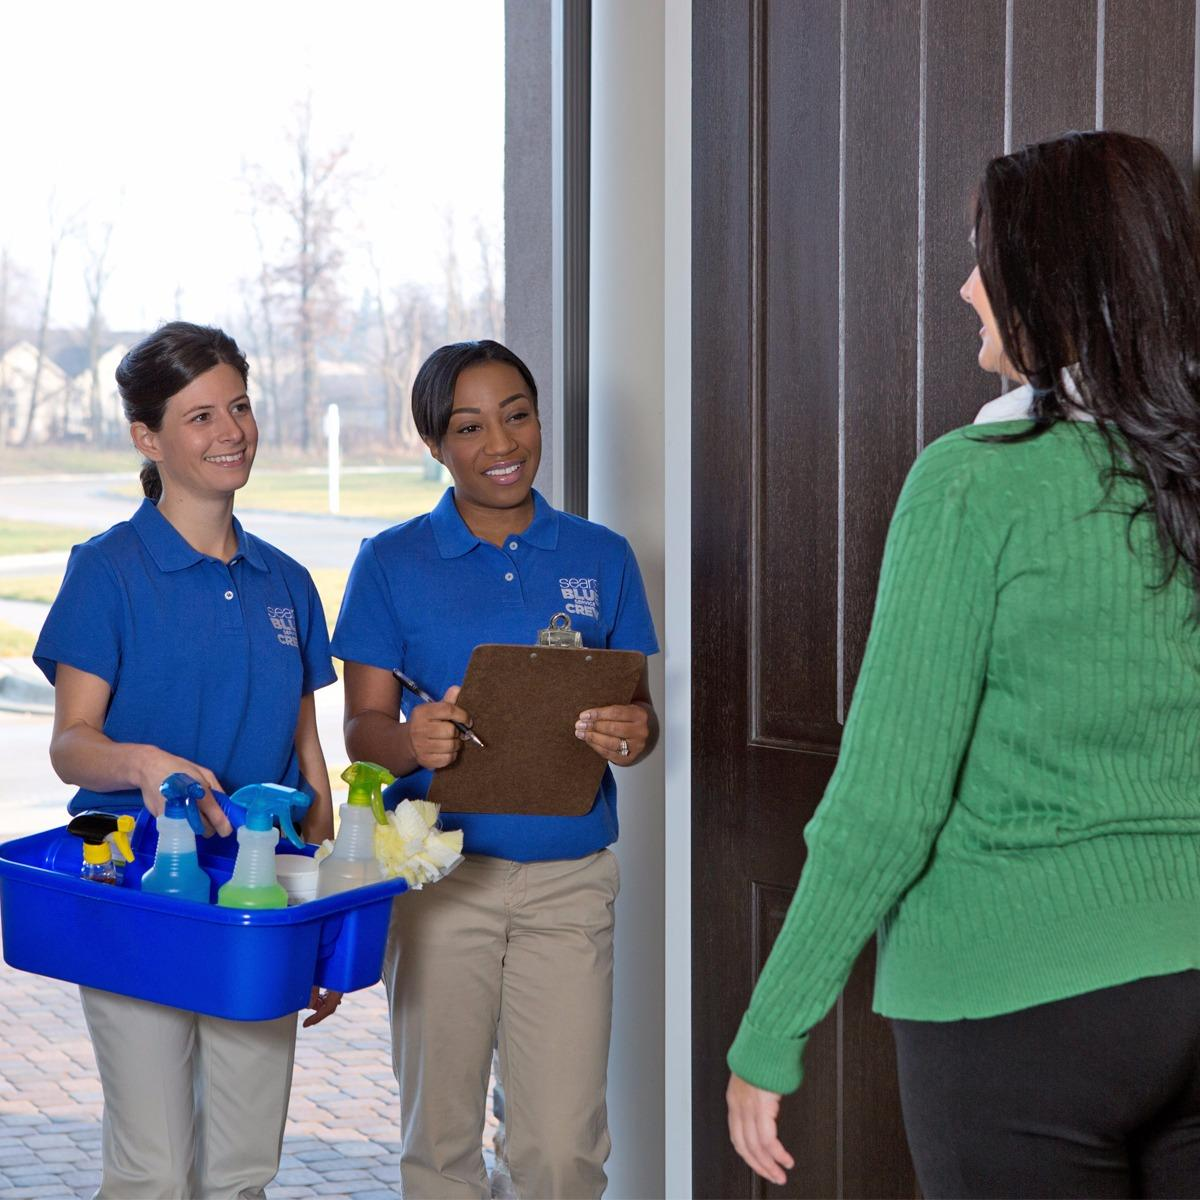 Sears Maid Services image 3